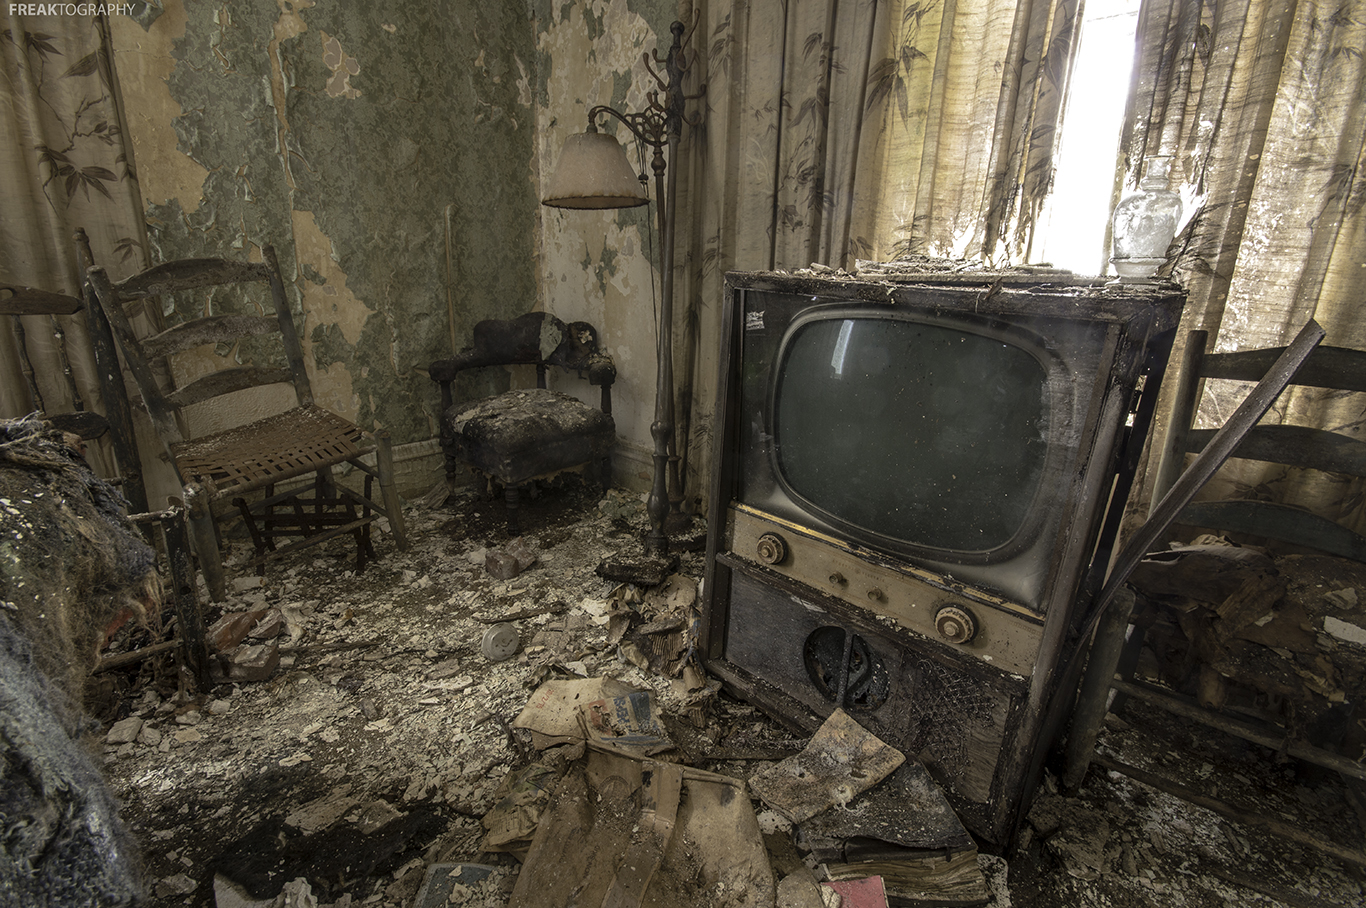 The destruction caused by time and elements inside an old abandoned farmhouse on Ontario.